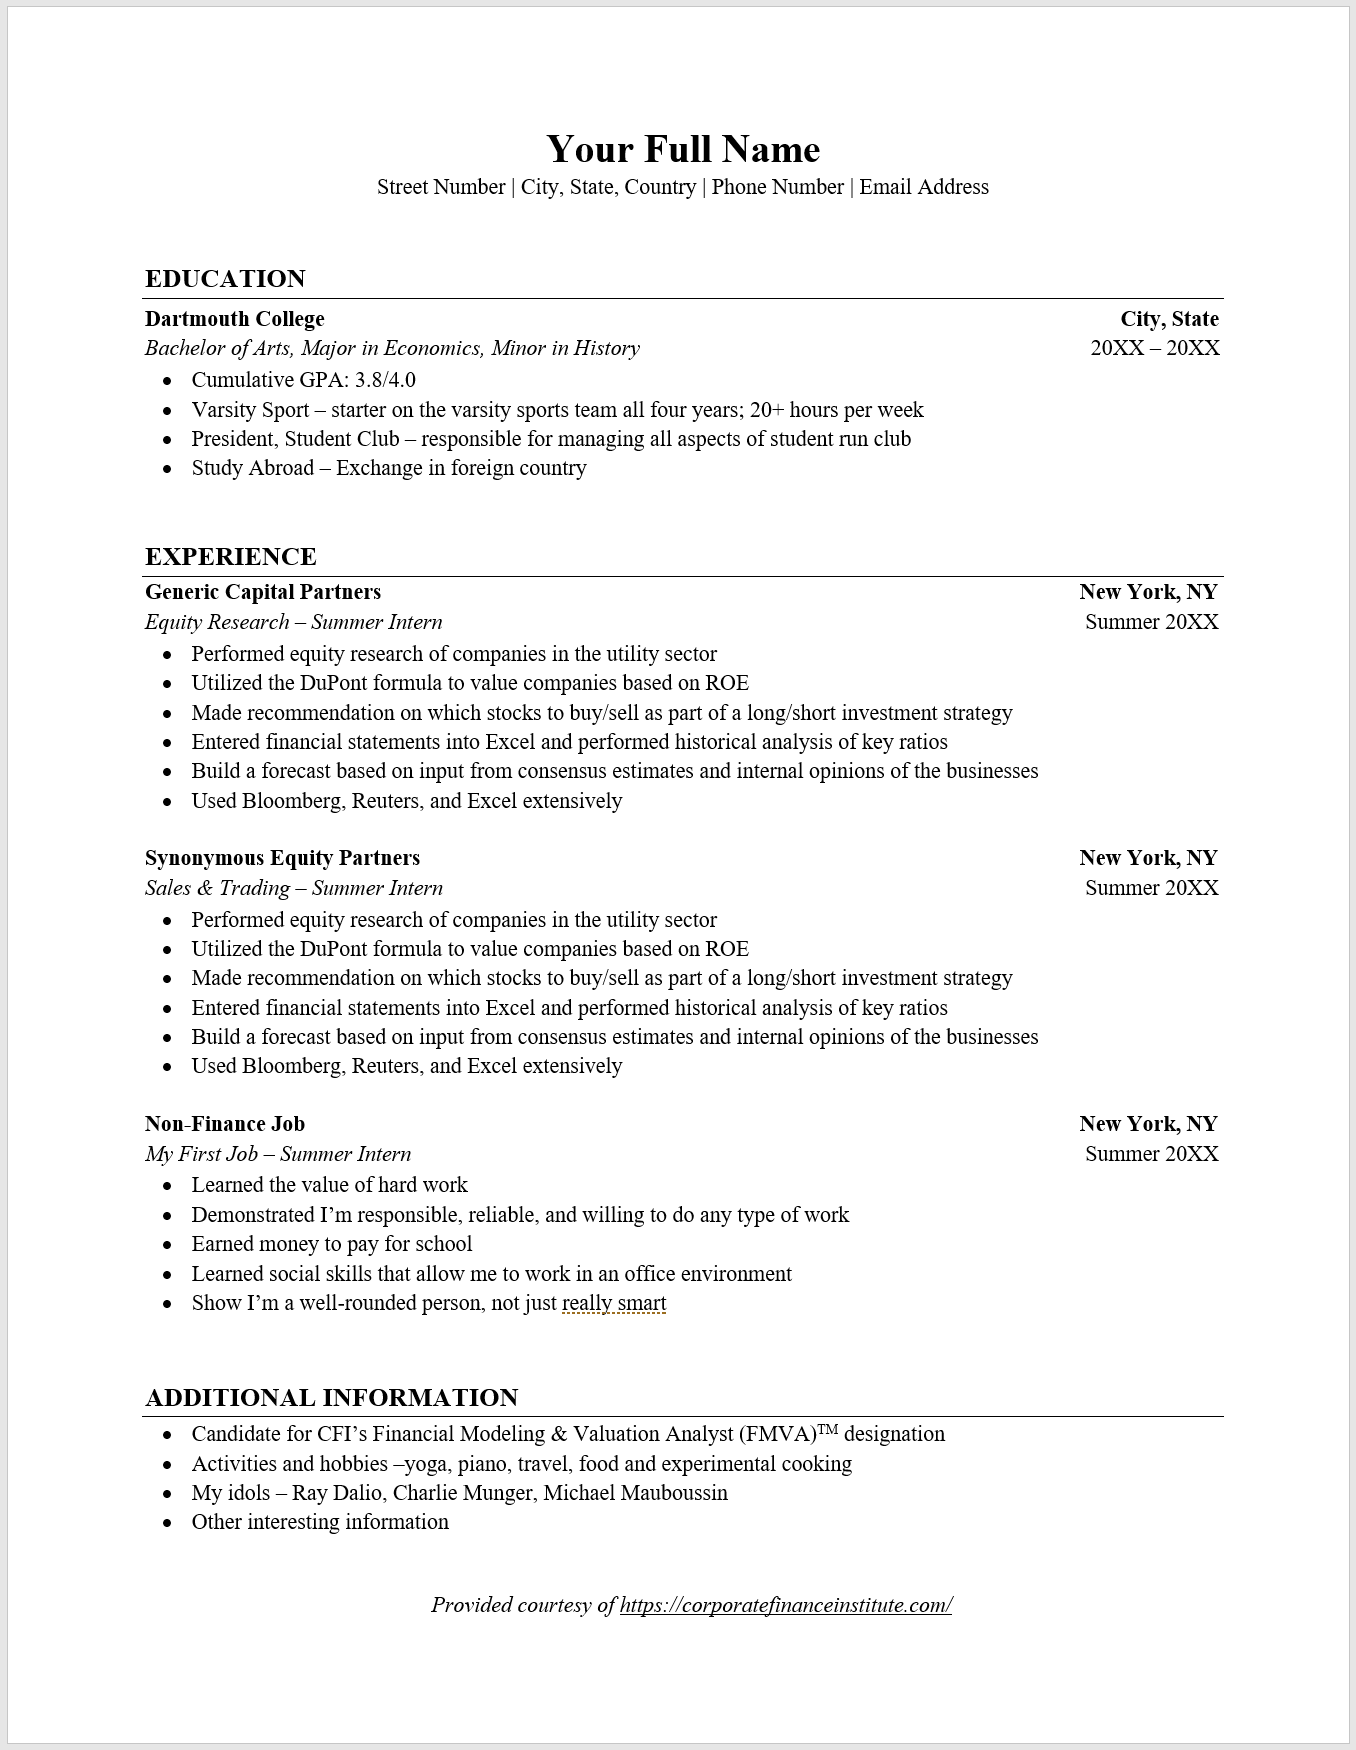 Free Resume Templates Overview, Main Types, How to